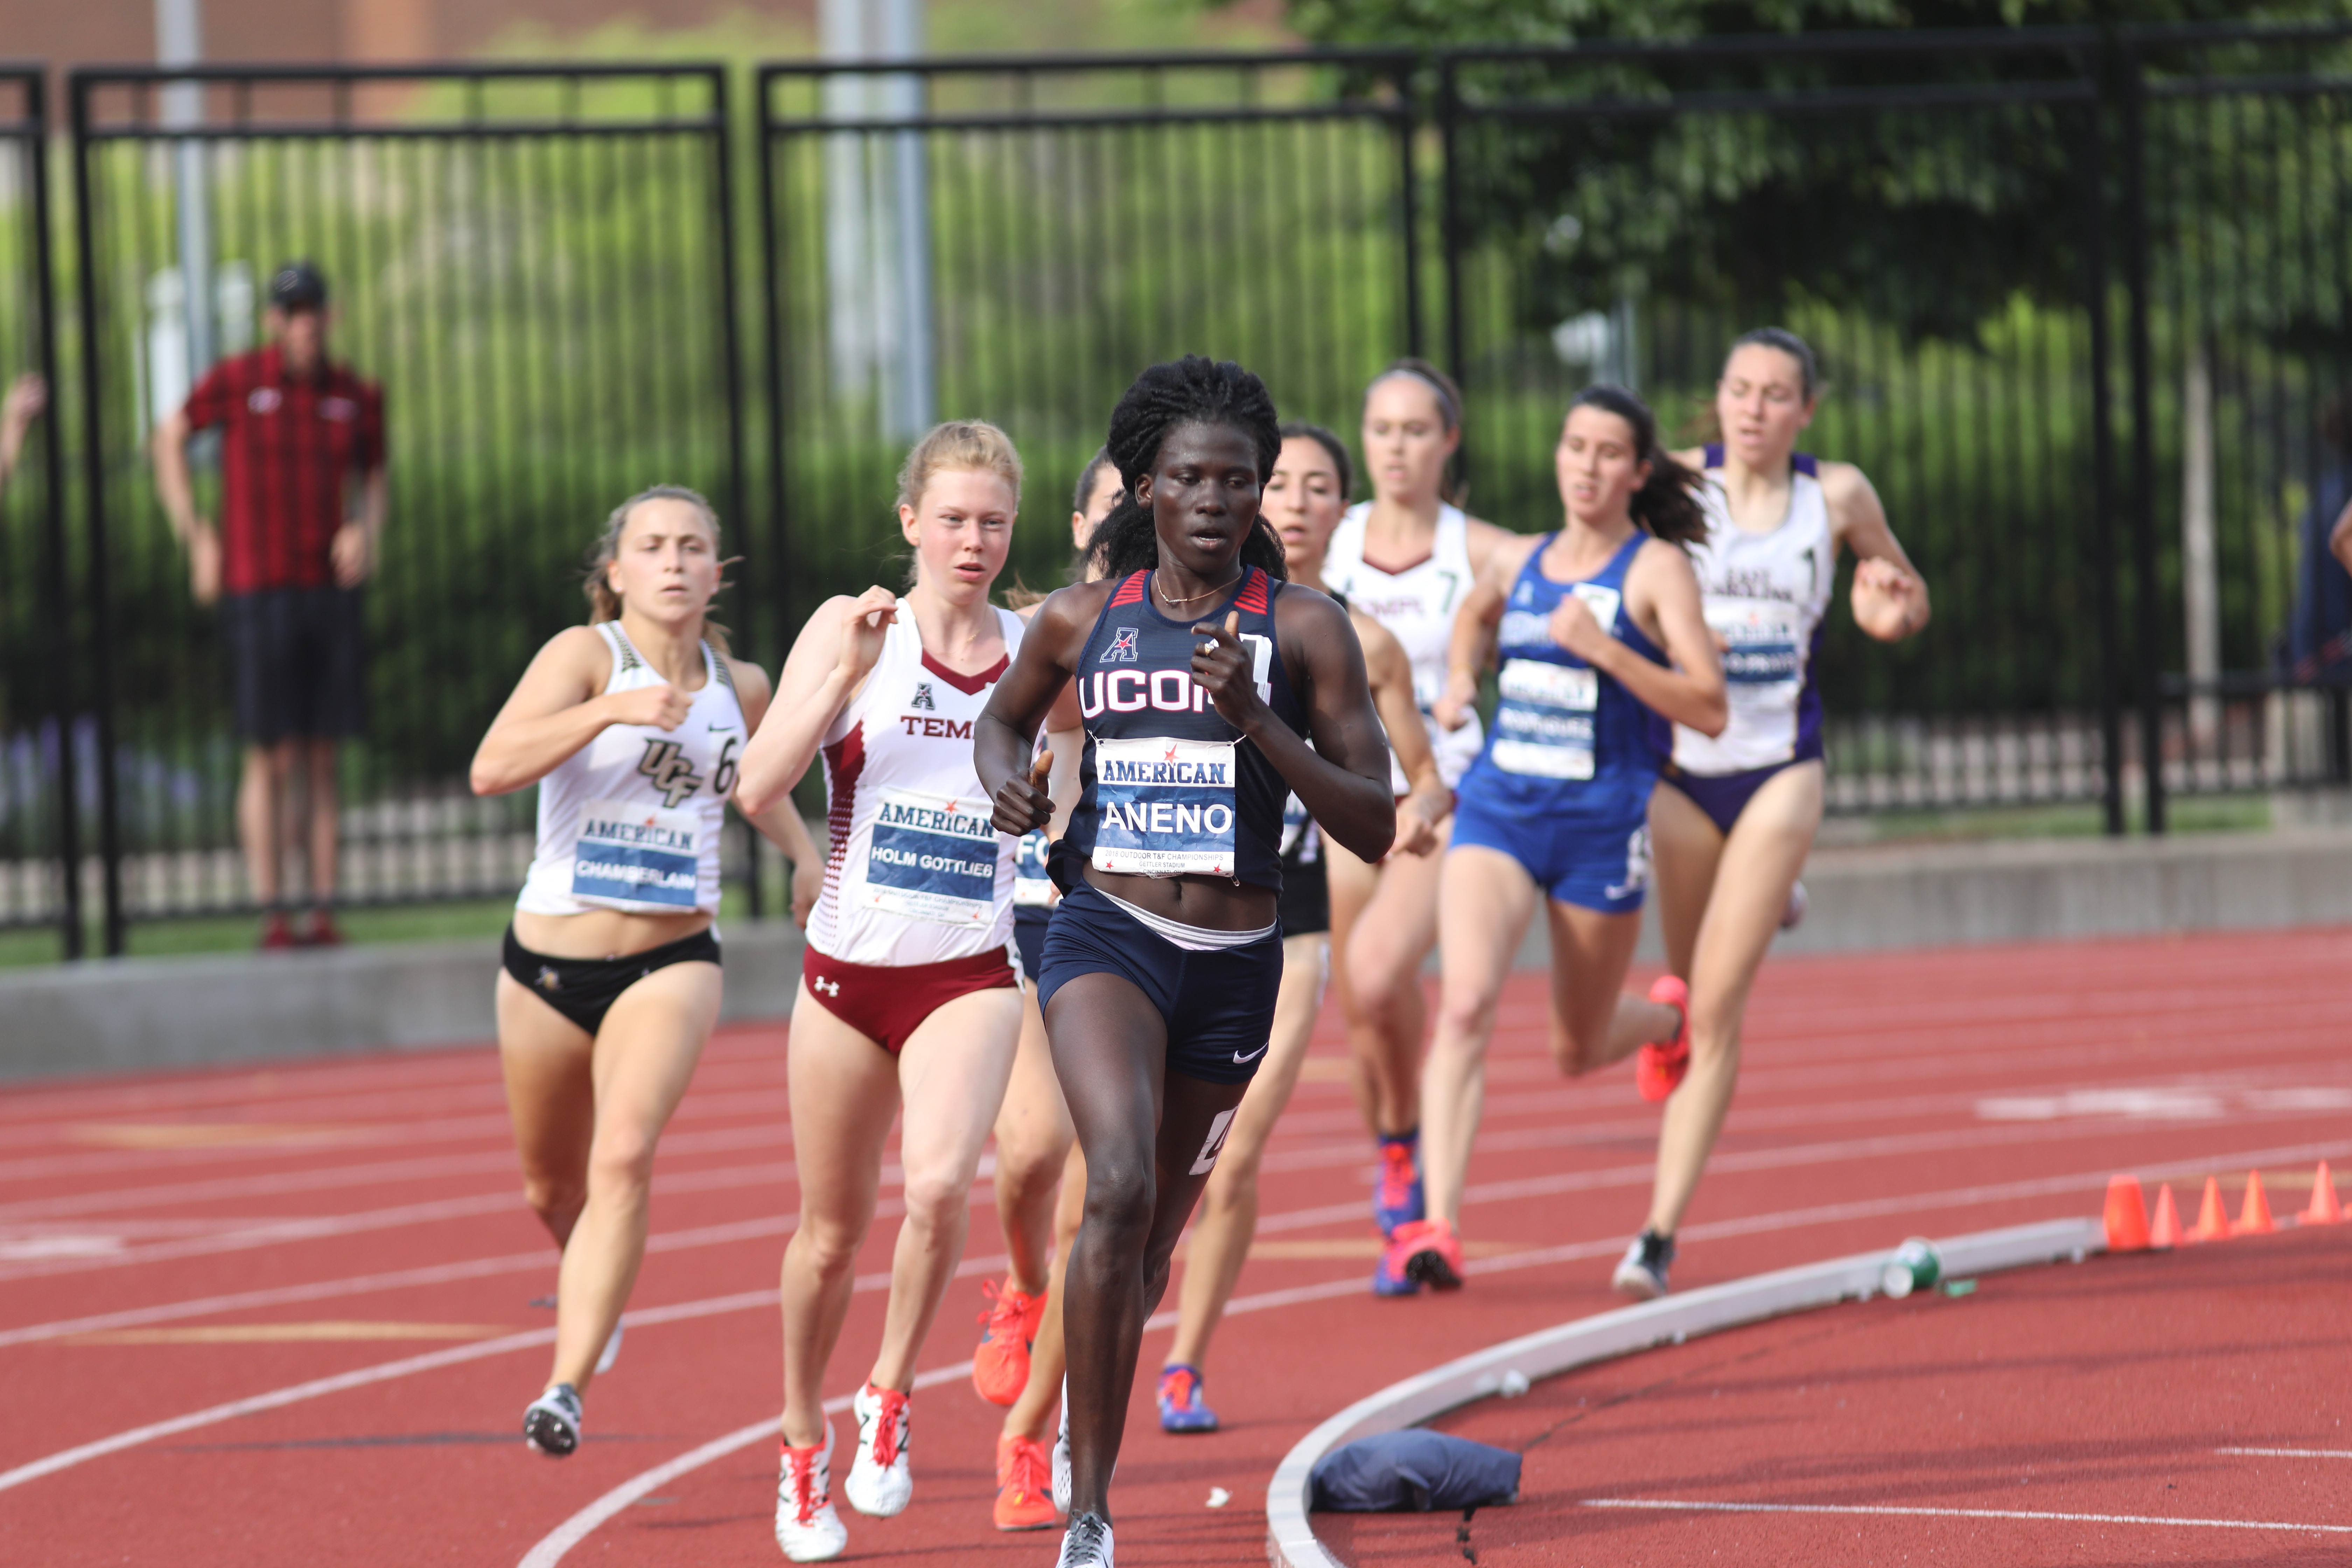 Susan Aneno, a junior, set a new conference meet record in the 800 m race on May 13, helping the Huskies finish fourth at the outdoor championship. (American Athletic Conference Photo)